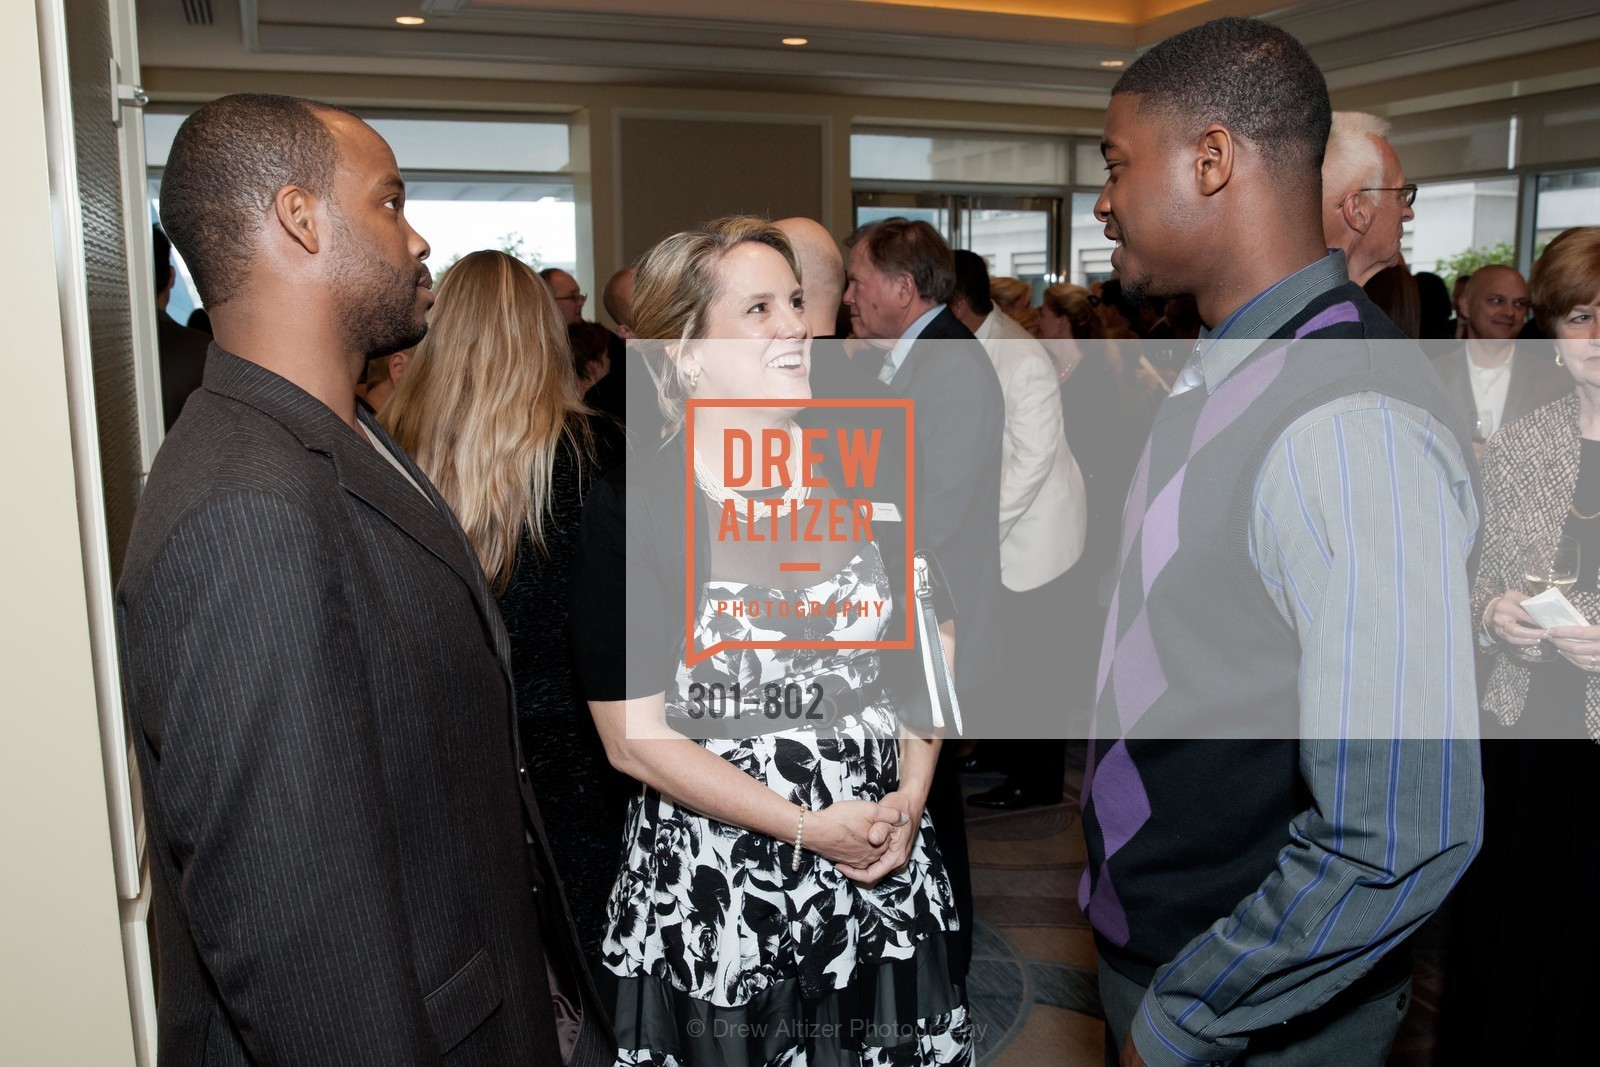 Anye Spivey, Dawn Kruger, Isaias, MR PORTER Celebrate The San Francisco Issue of The Journal, US, April 24th, 2015,Drew Altizer, Drew Altizer Photography, full-service event agency, private events, San Francisco photographer, photographer California